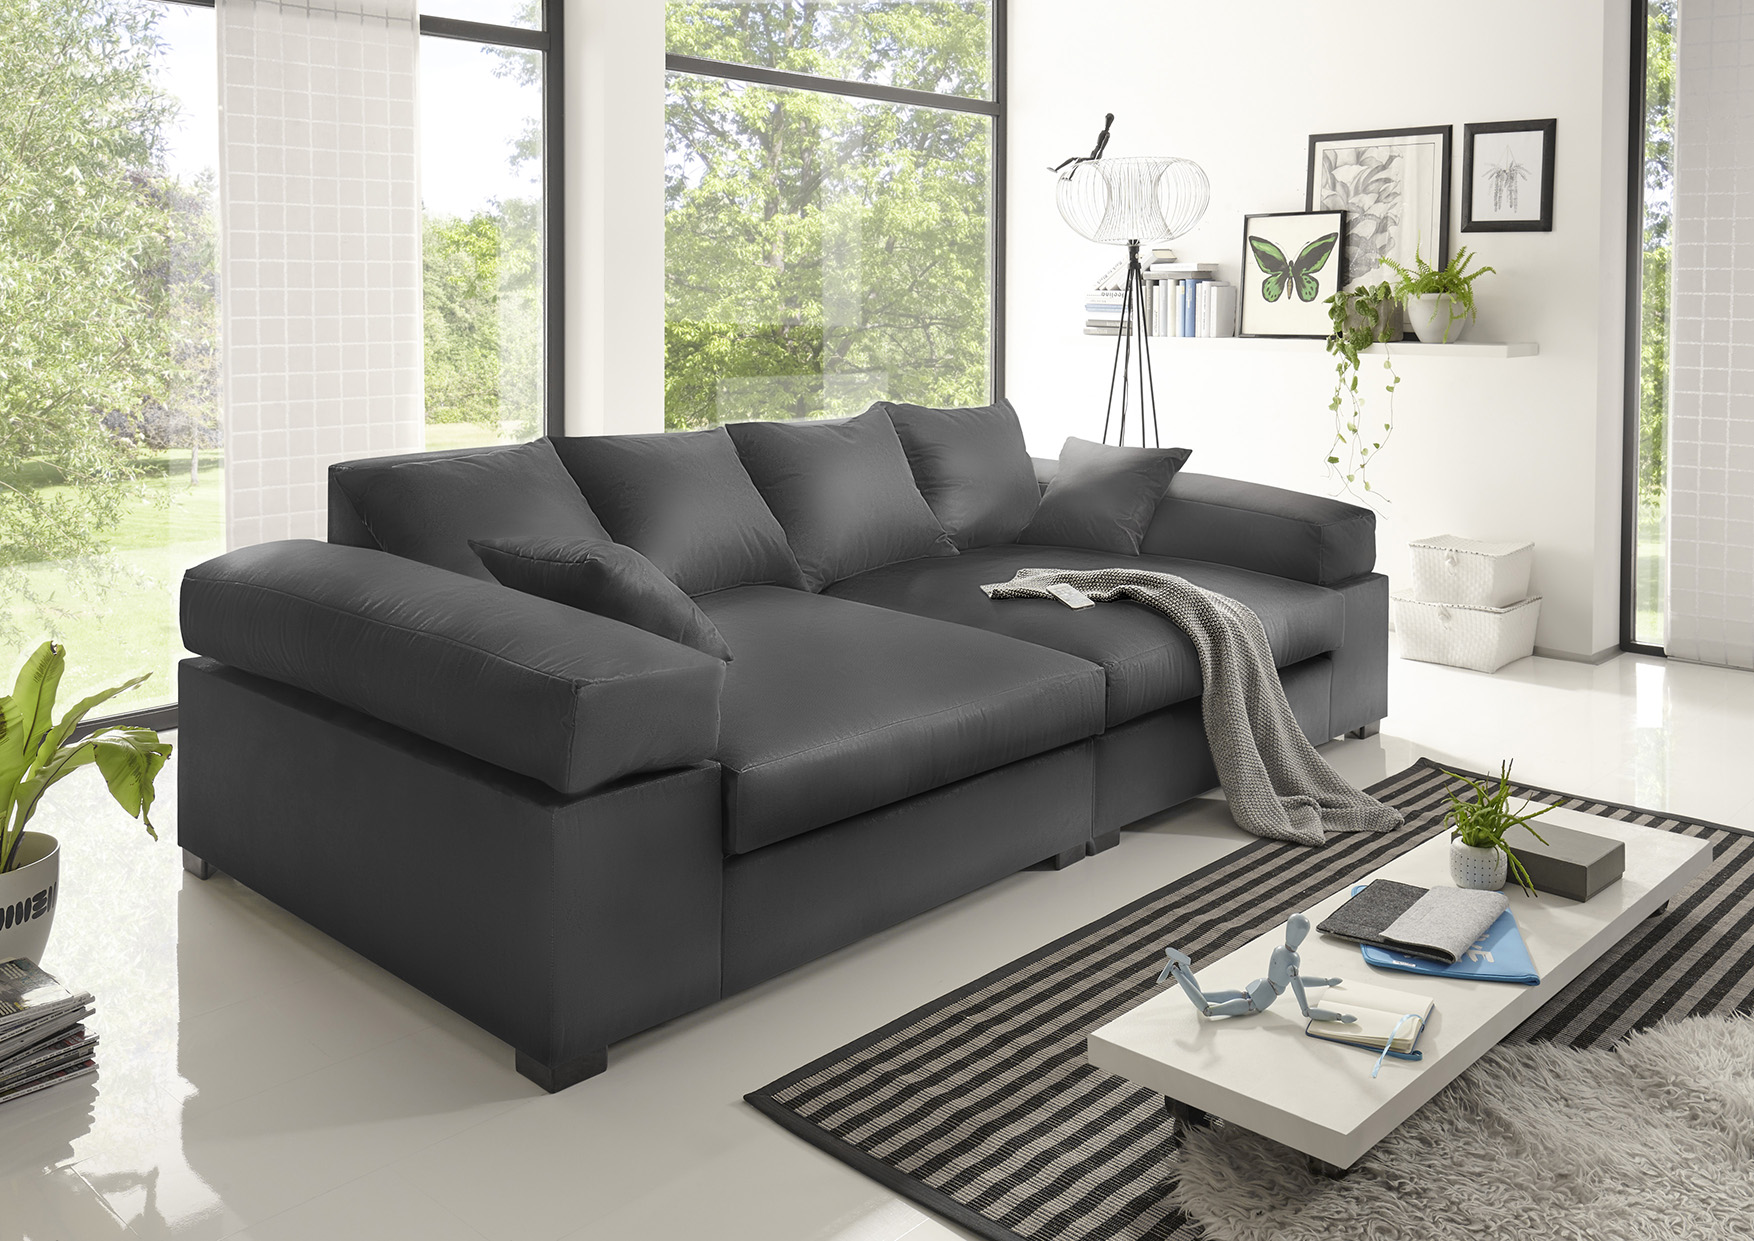 big sofa couchgarnitur megasofa riesensofa arezzo kunstleder anthrazit fun m bel. Black Bedroom Furniture Sets. Home Design Ideas